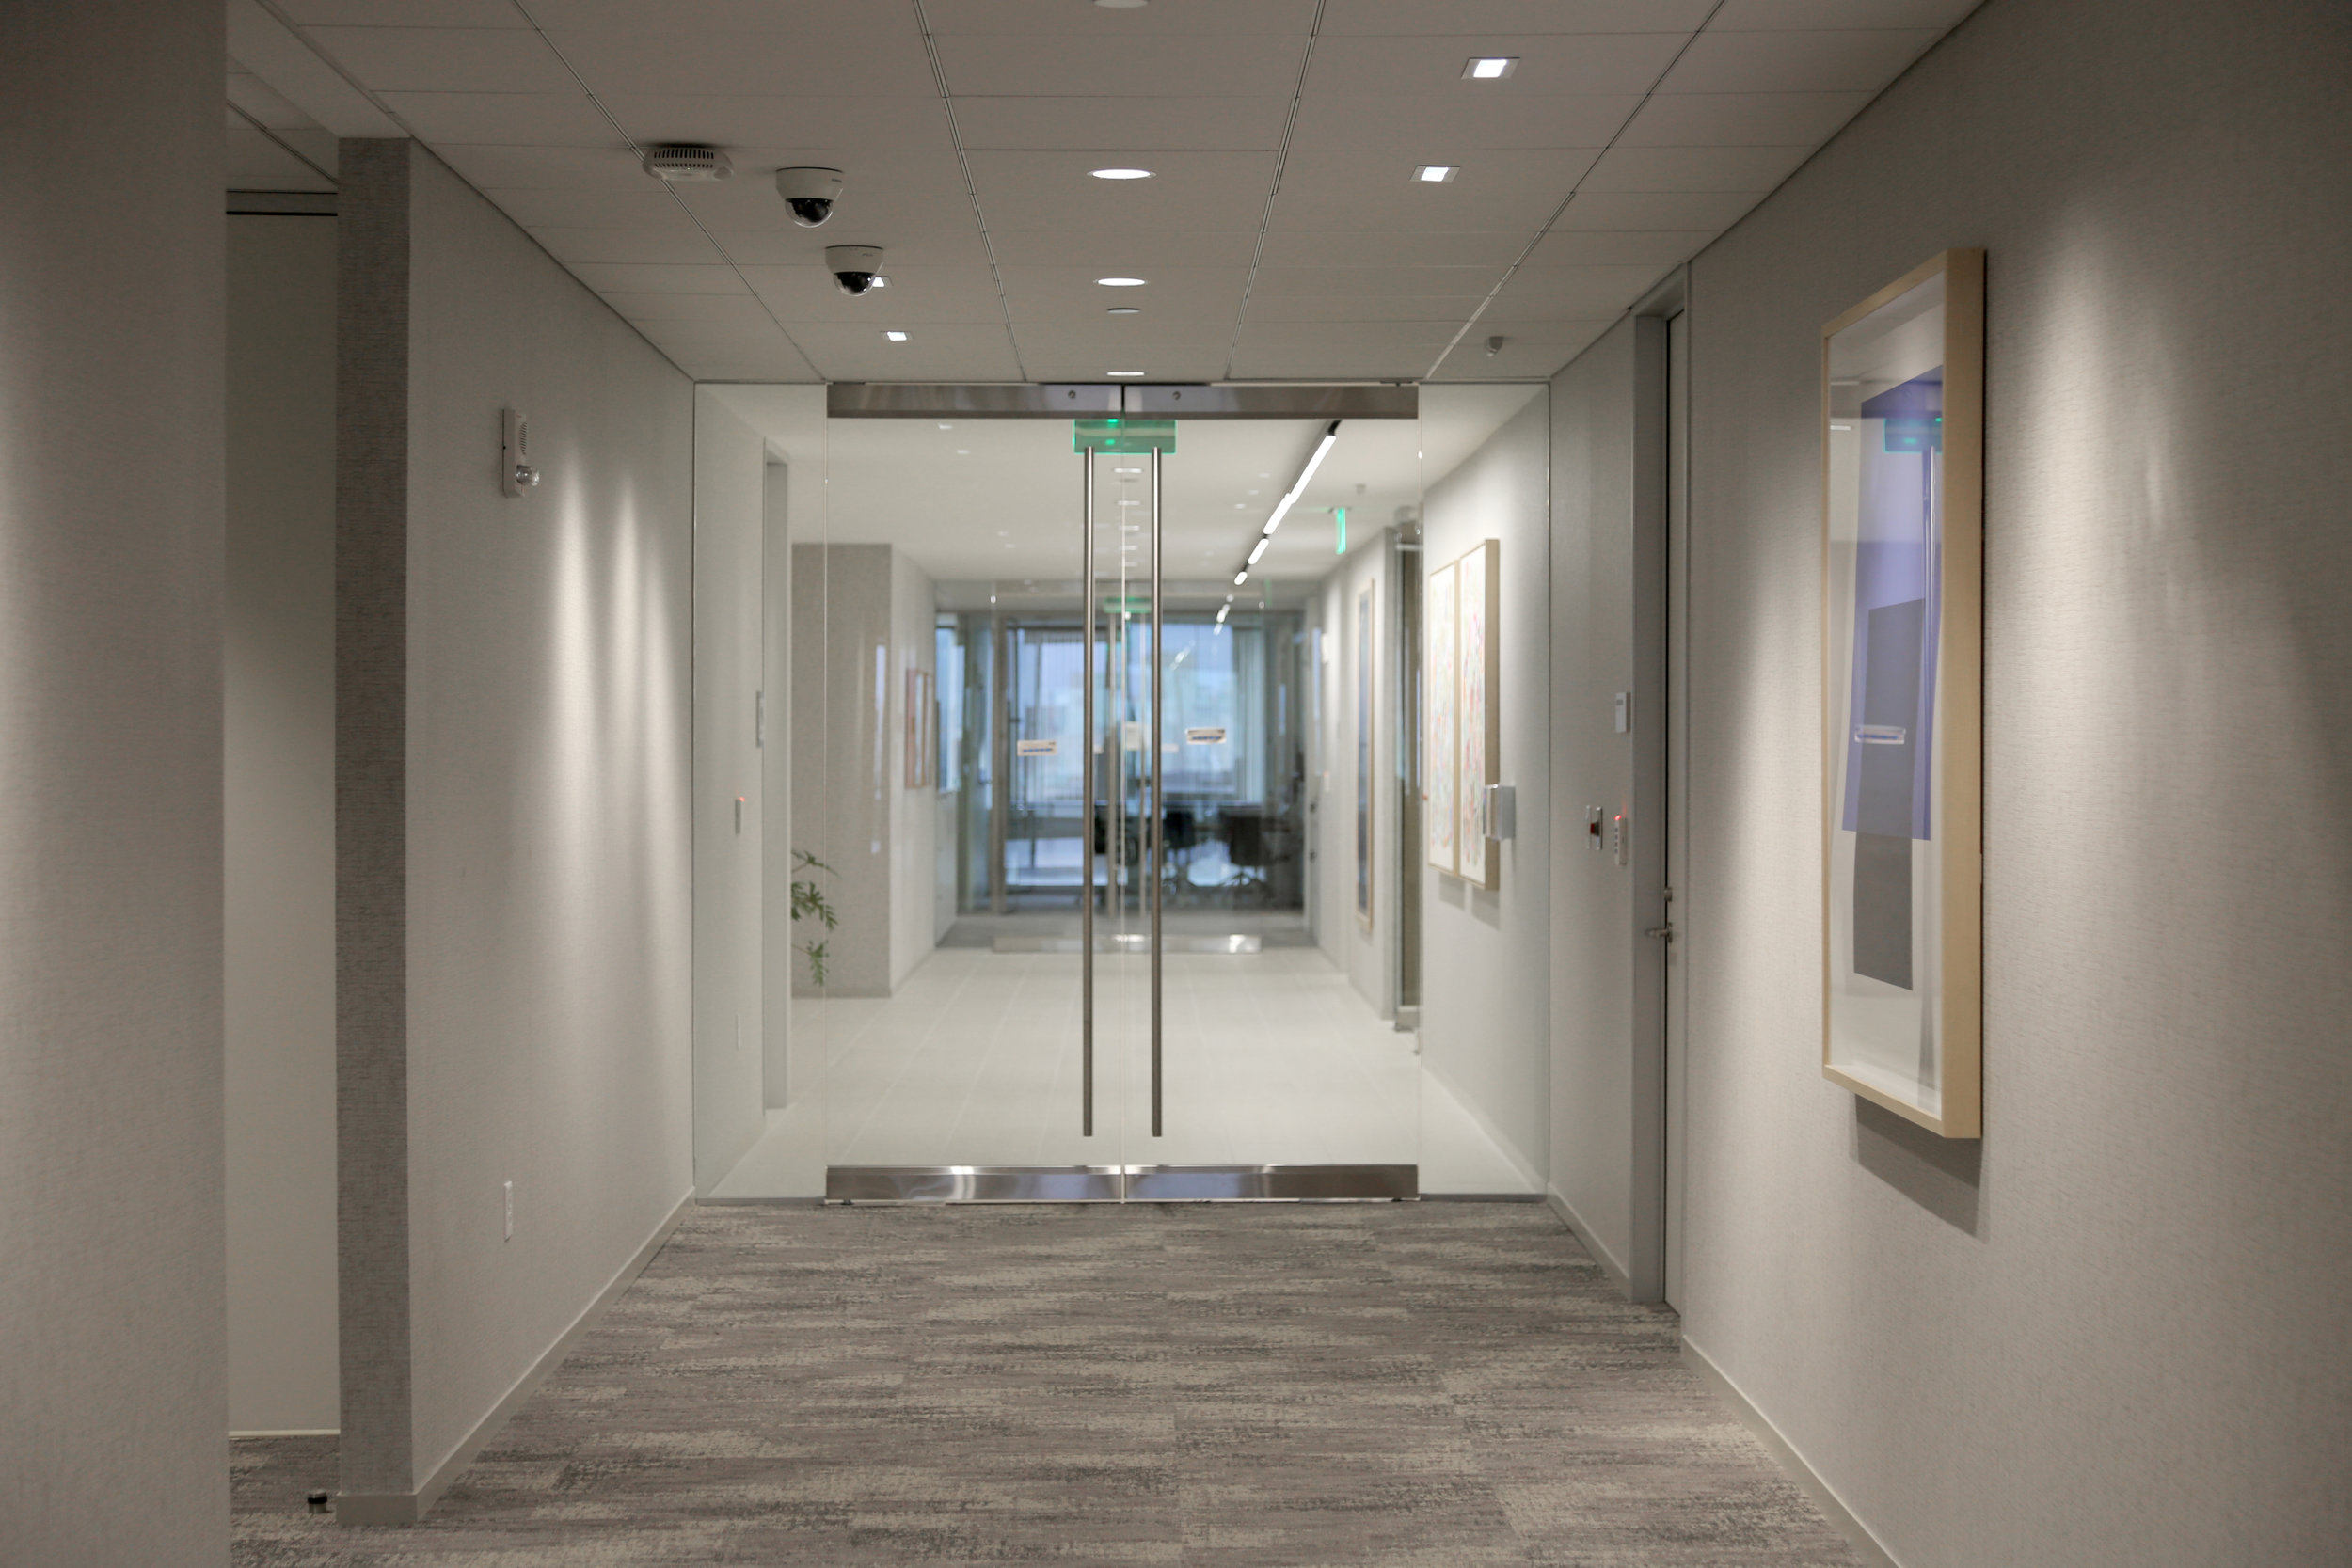 Frameless Glass Entry Doors Maglock System Elevator Lobby - Spaceworks AI.jpg